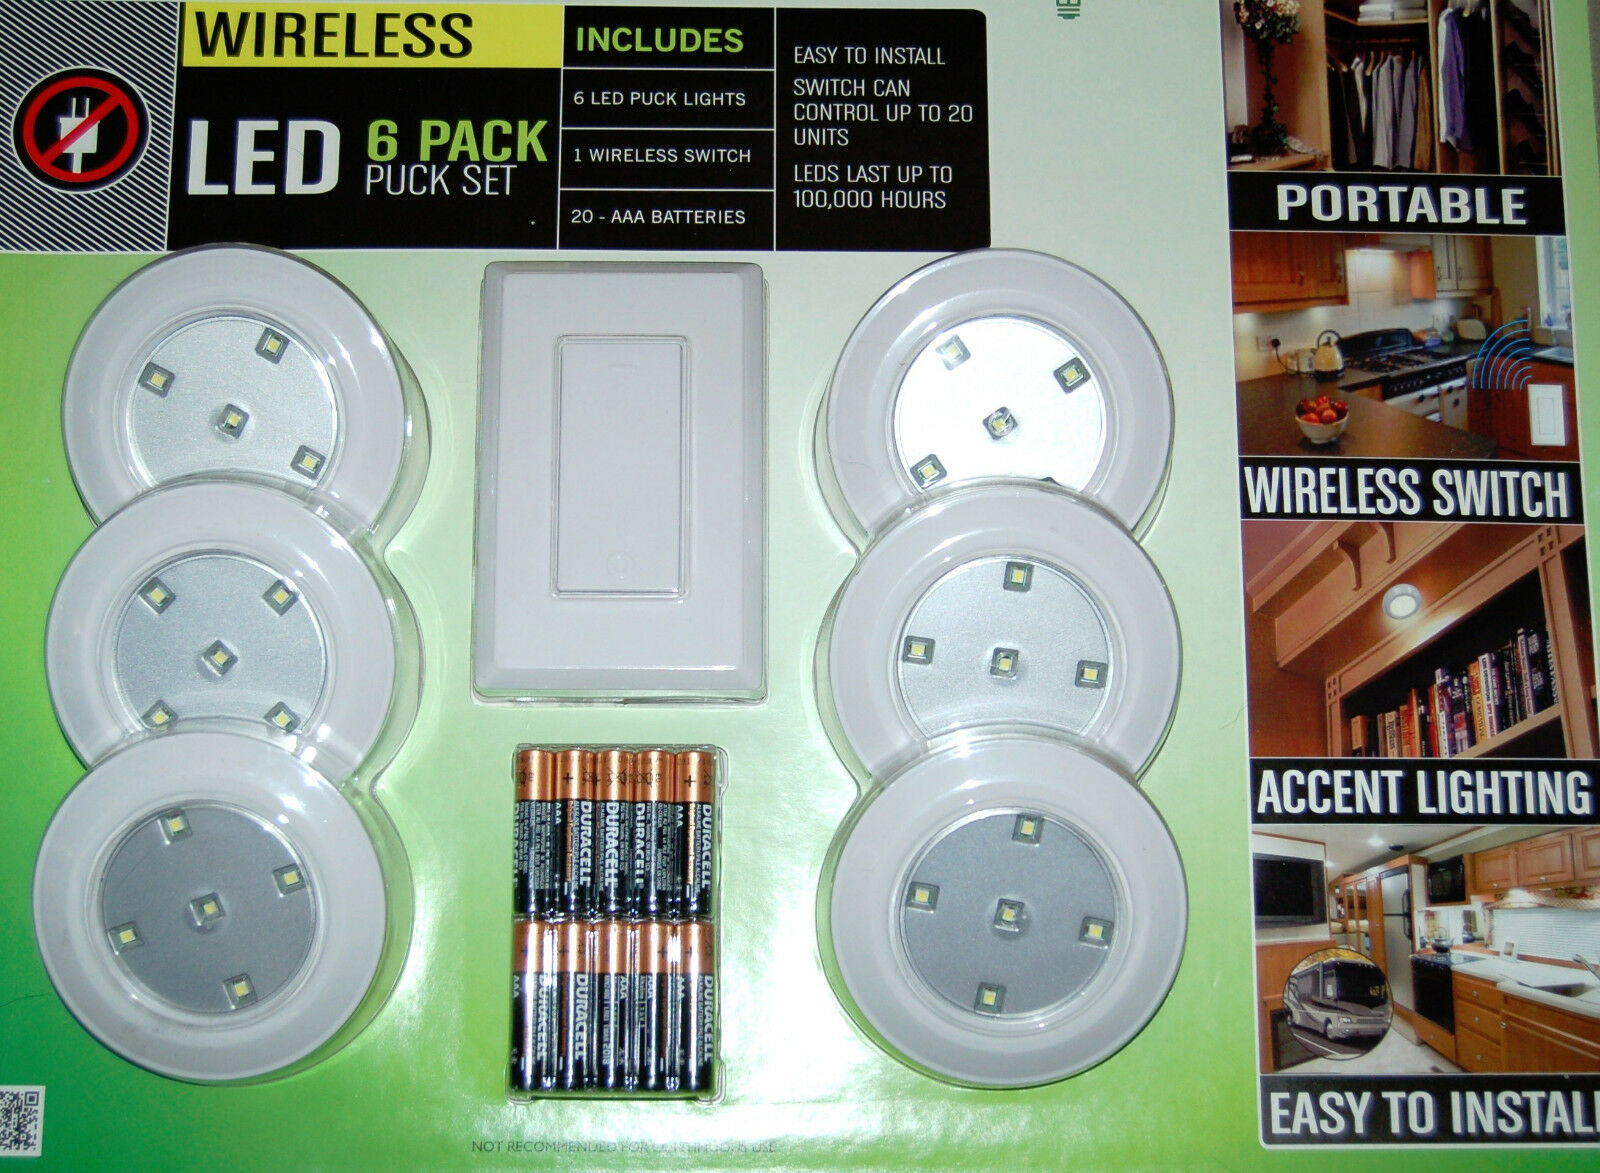 Buy Lightmates Led Wireless Puck Lights With Remote Batteries 6 Pack